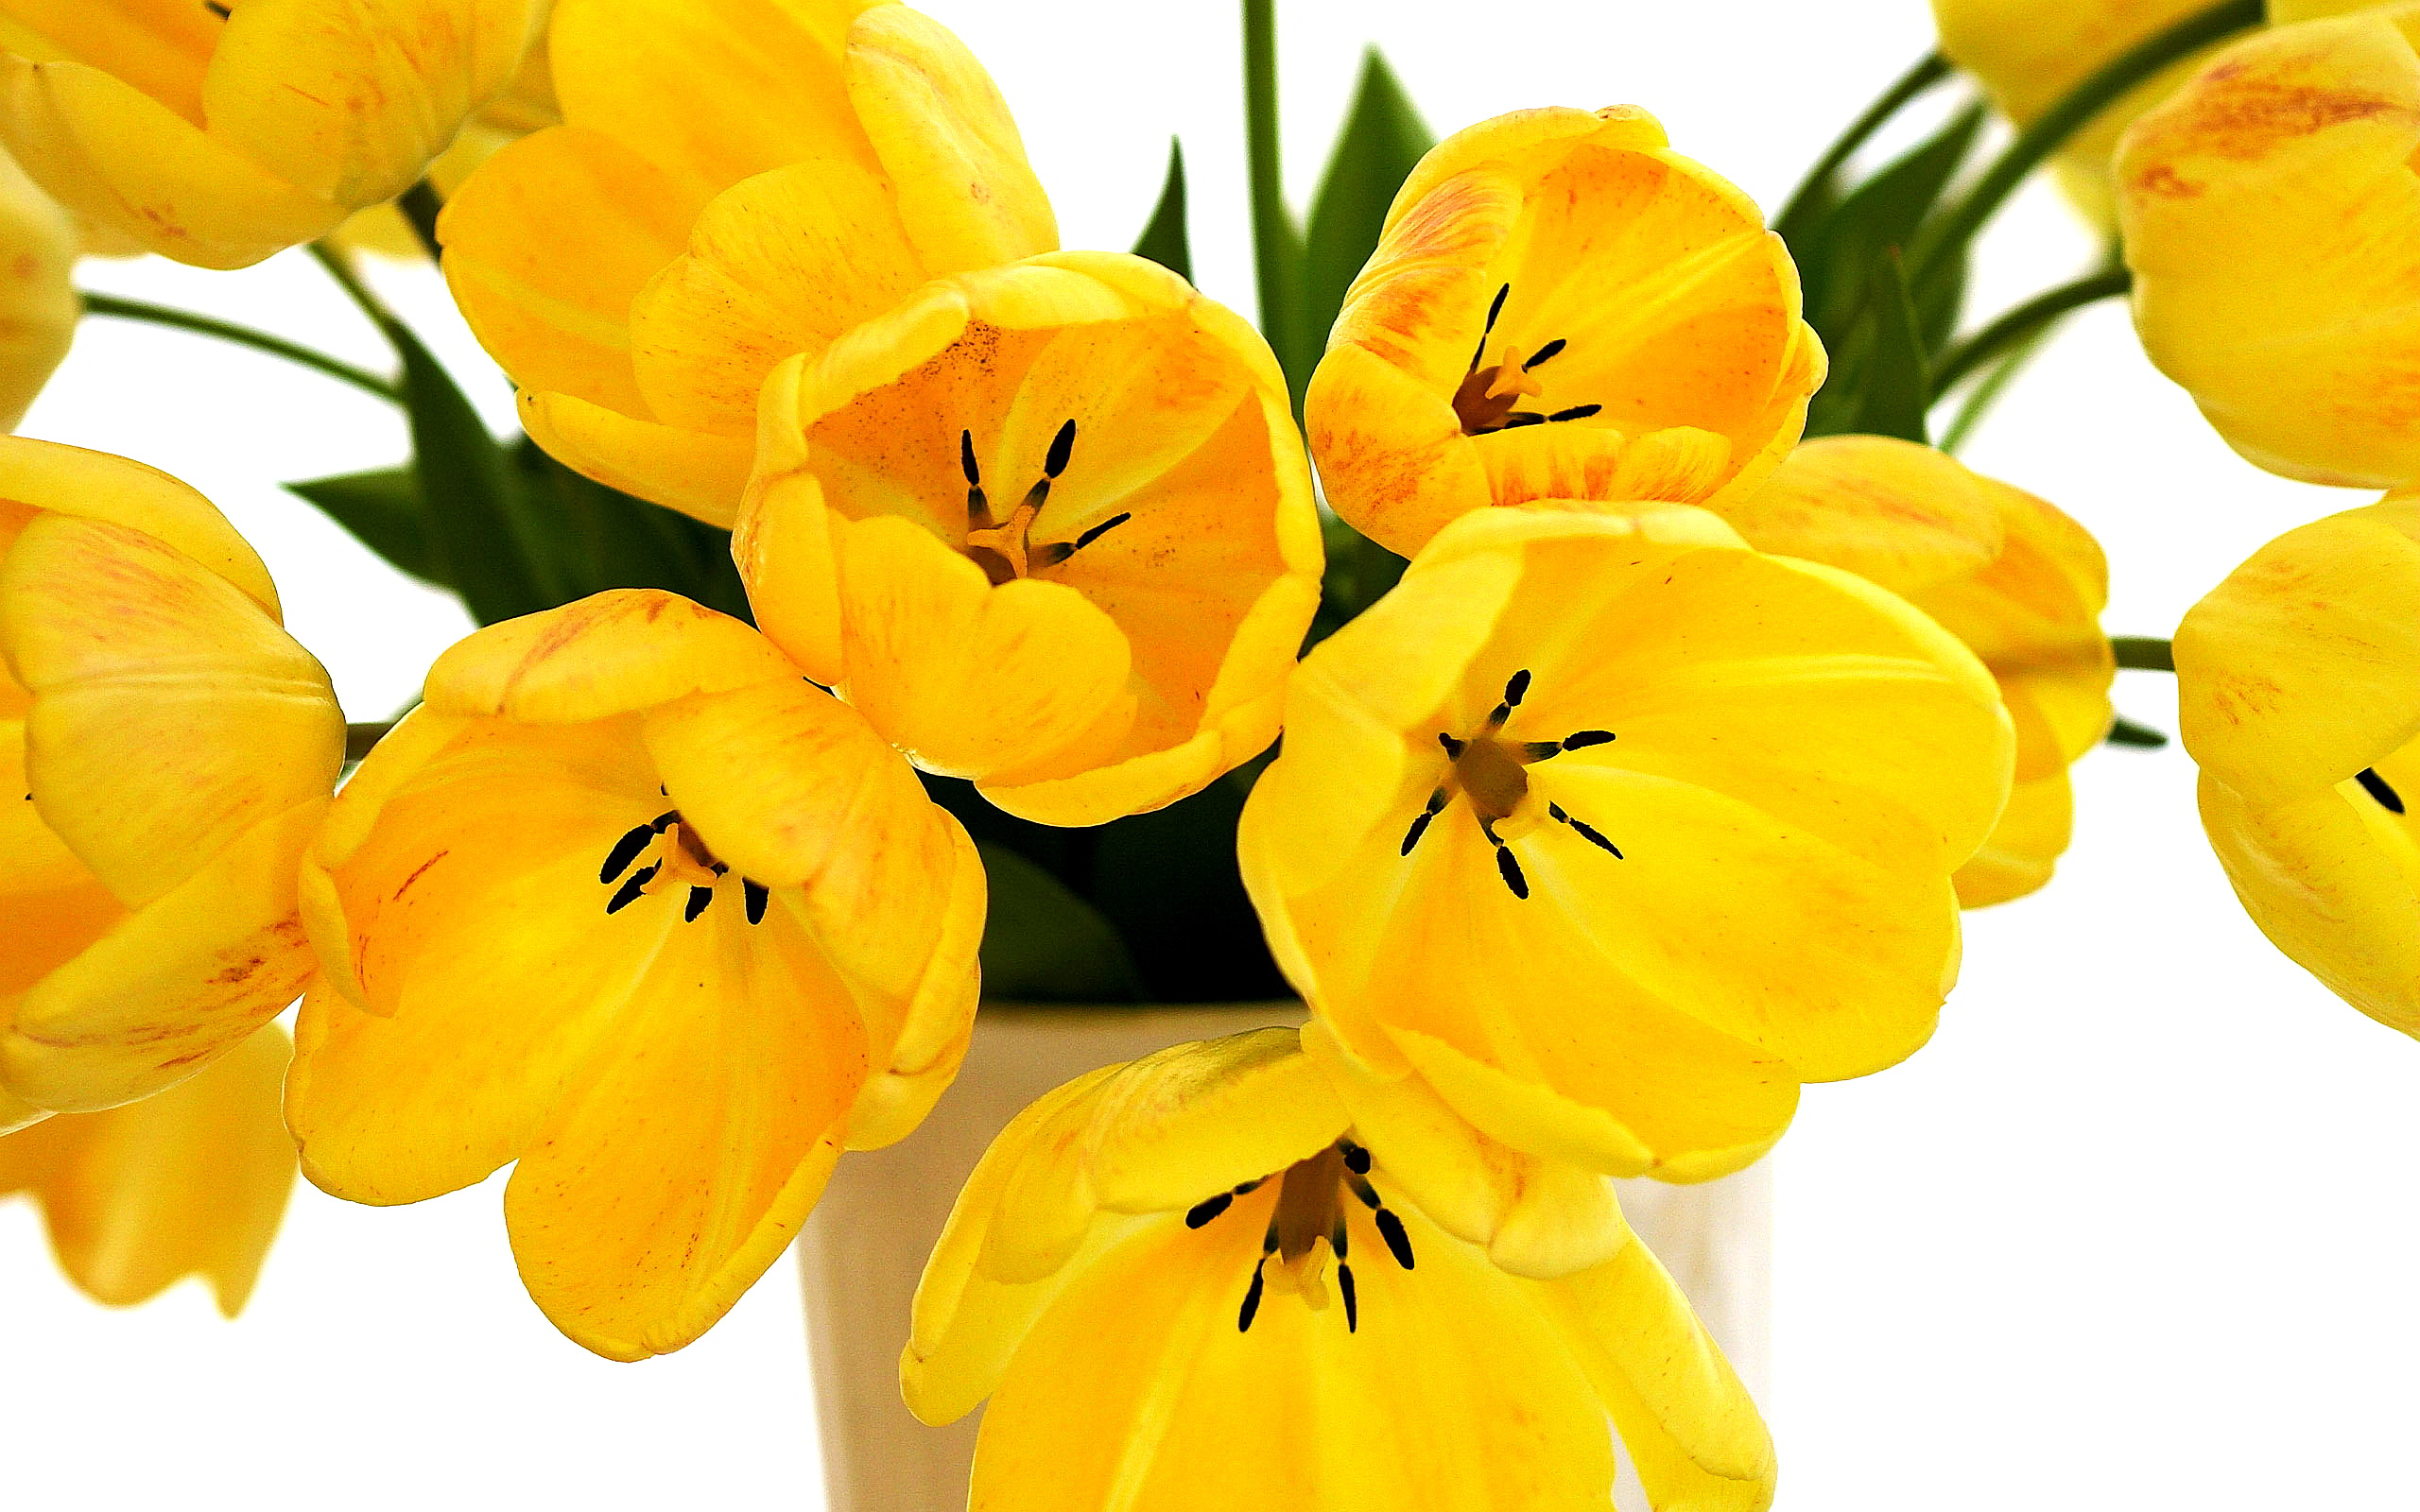 Speckled Yellow Tulips